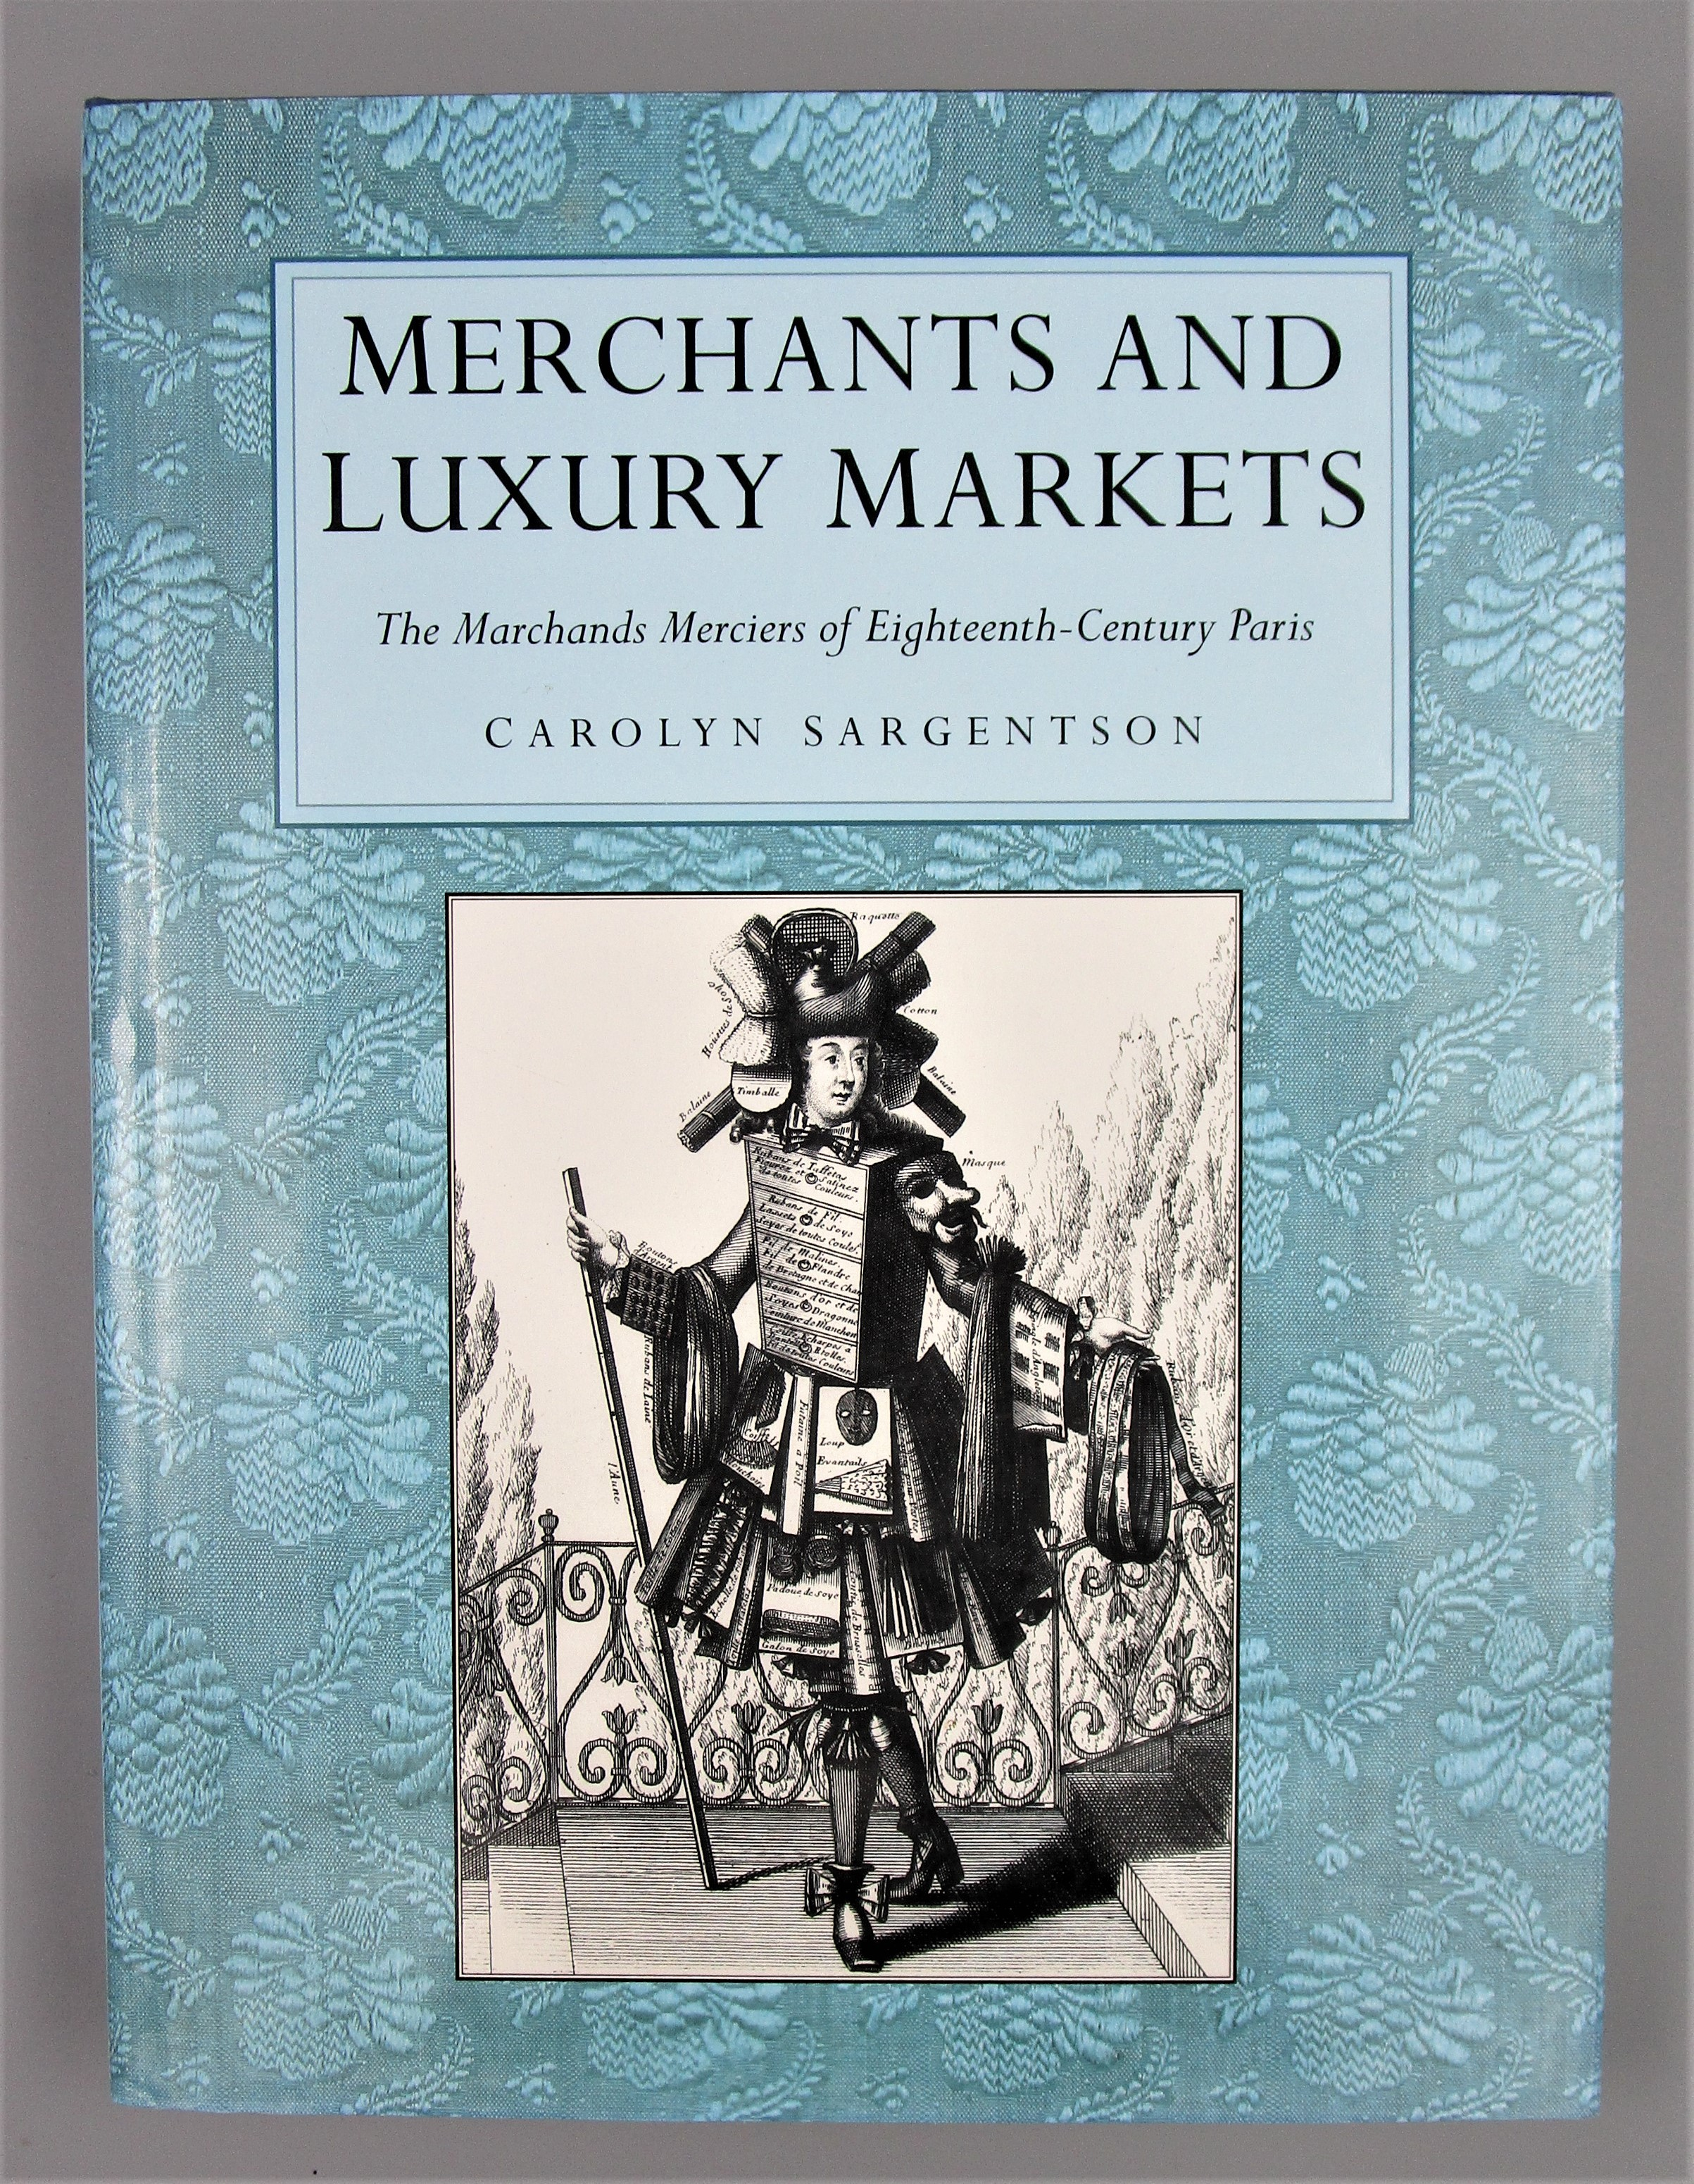 MERCHANTS & LUXURY MARKETS: 18th C Paris, by Carolyn Sargentson - 1996